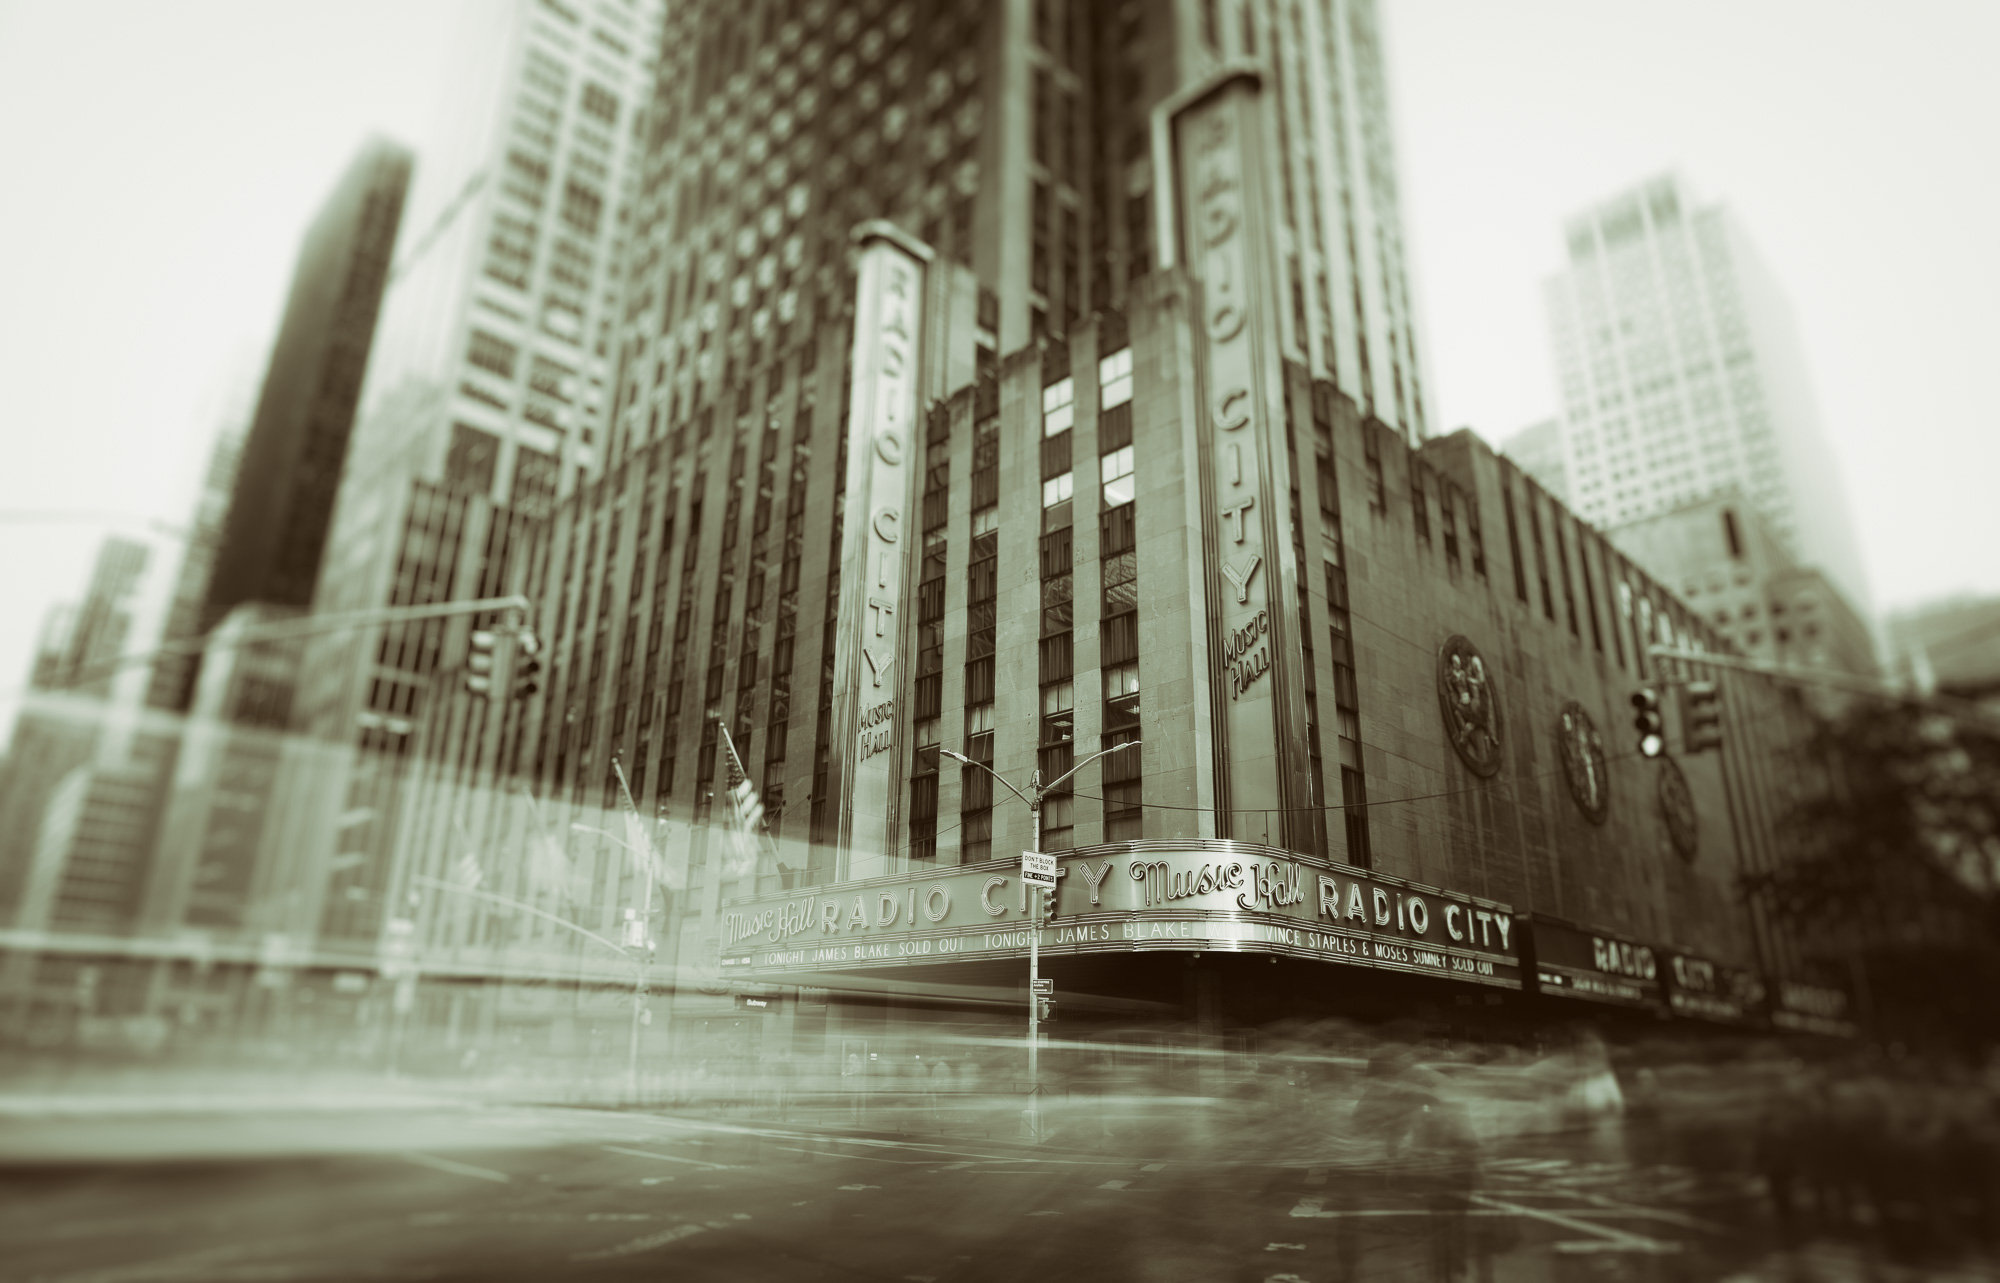 Radio City in Monochromatic Slow Motion